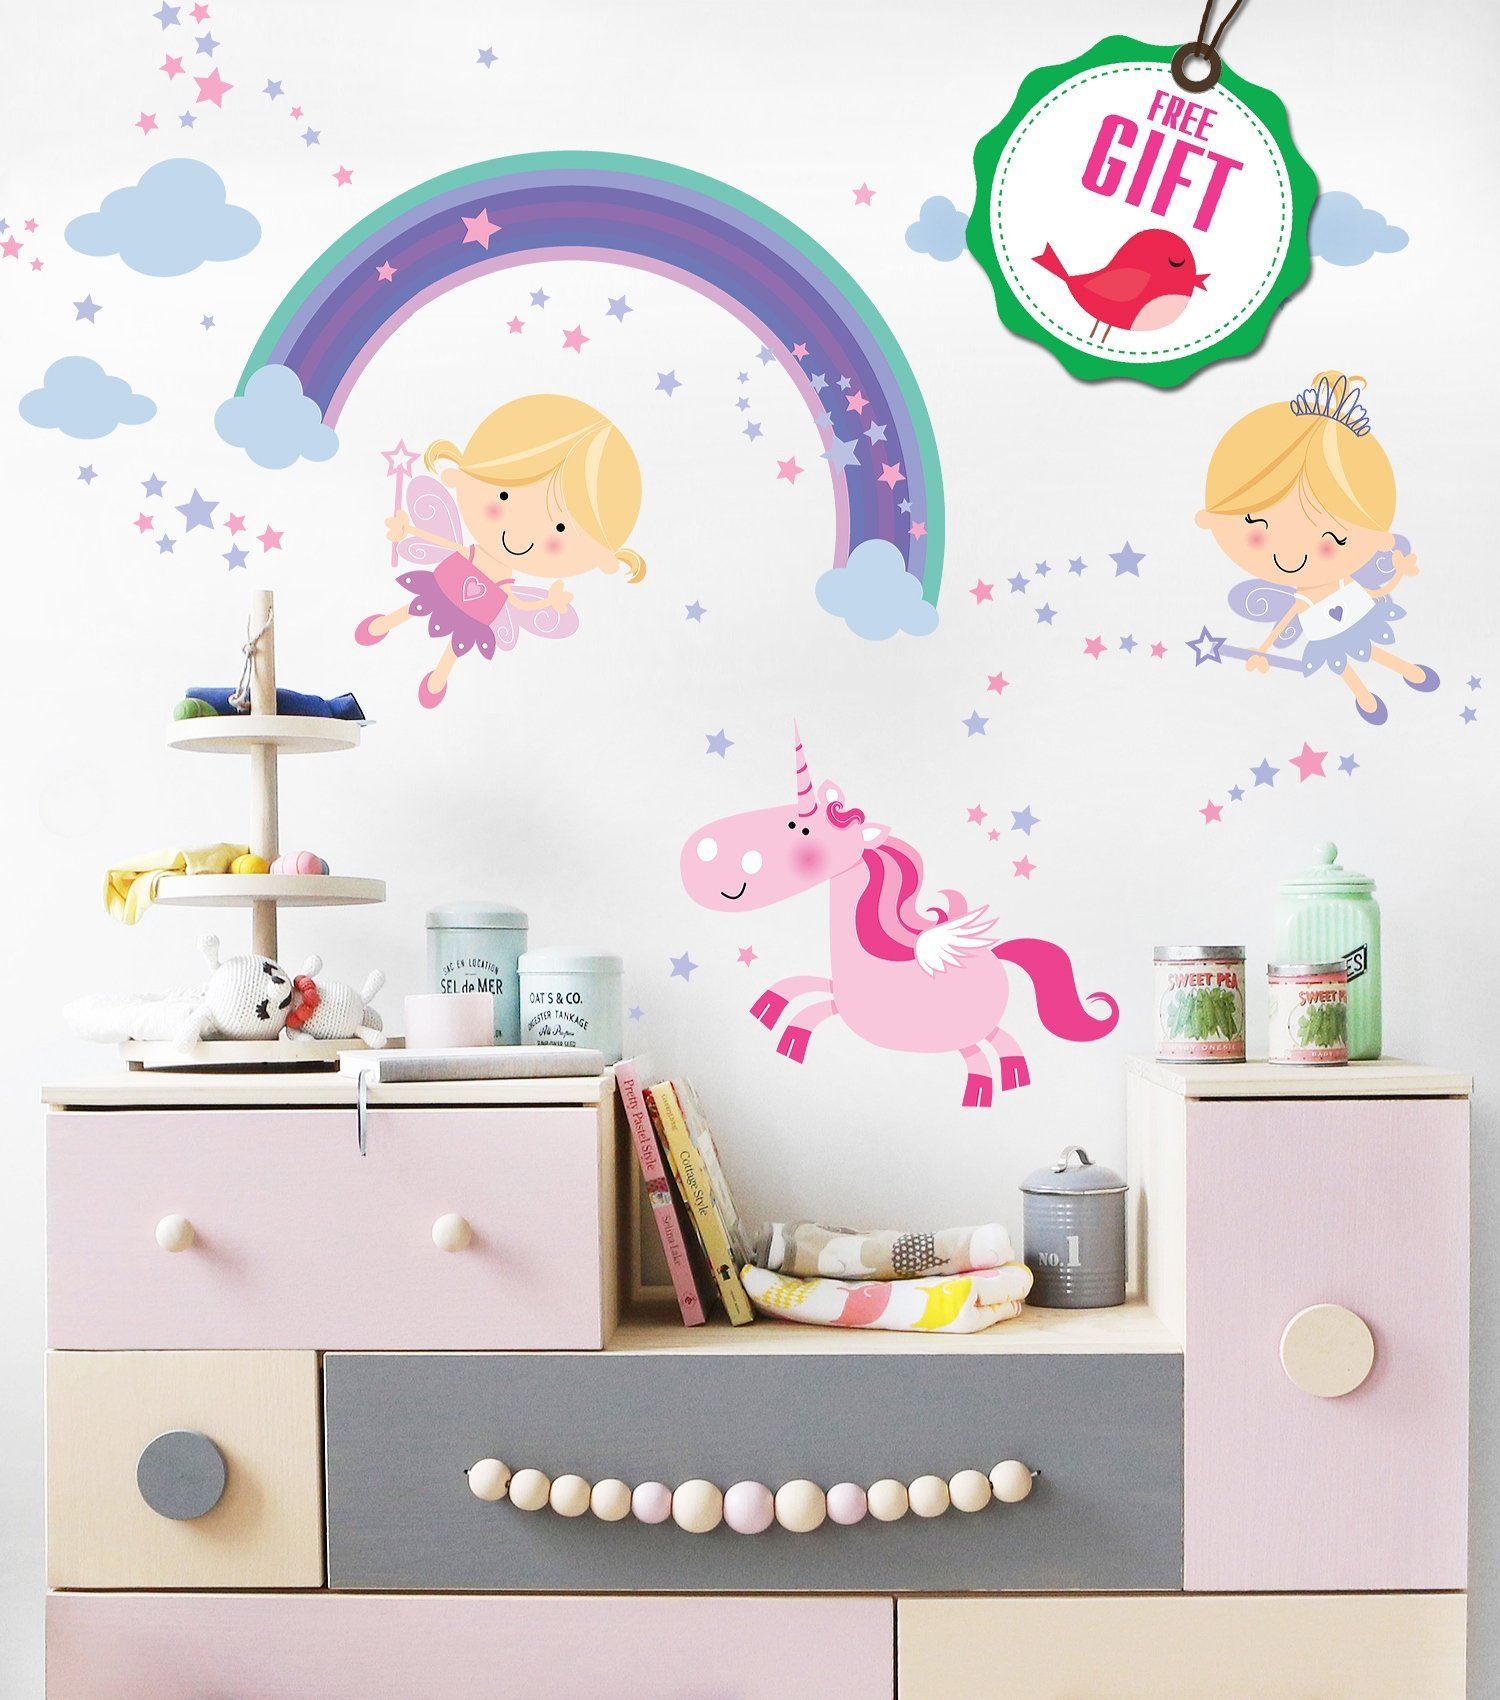 Unicorn Baby Girl Room Décor - Fairy Wall Stickers Childrens for Bedroom, Nursery, Playroom - with Free Gift! 3